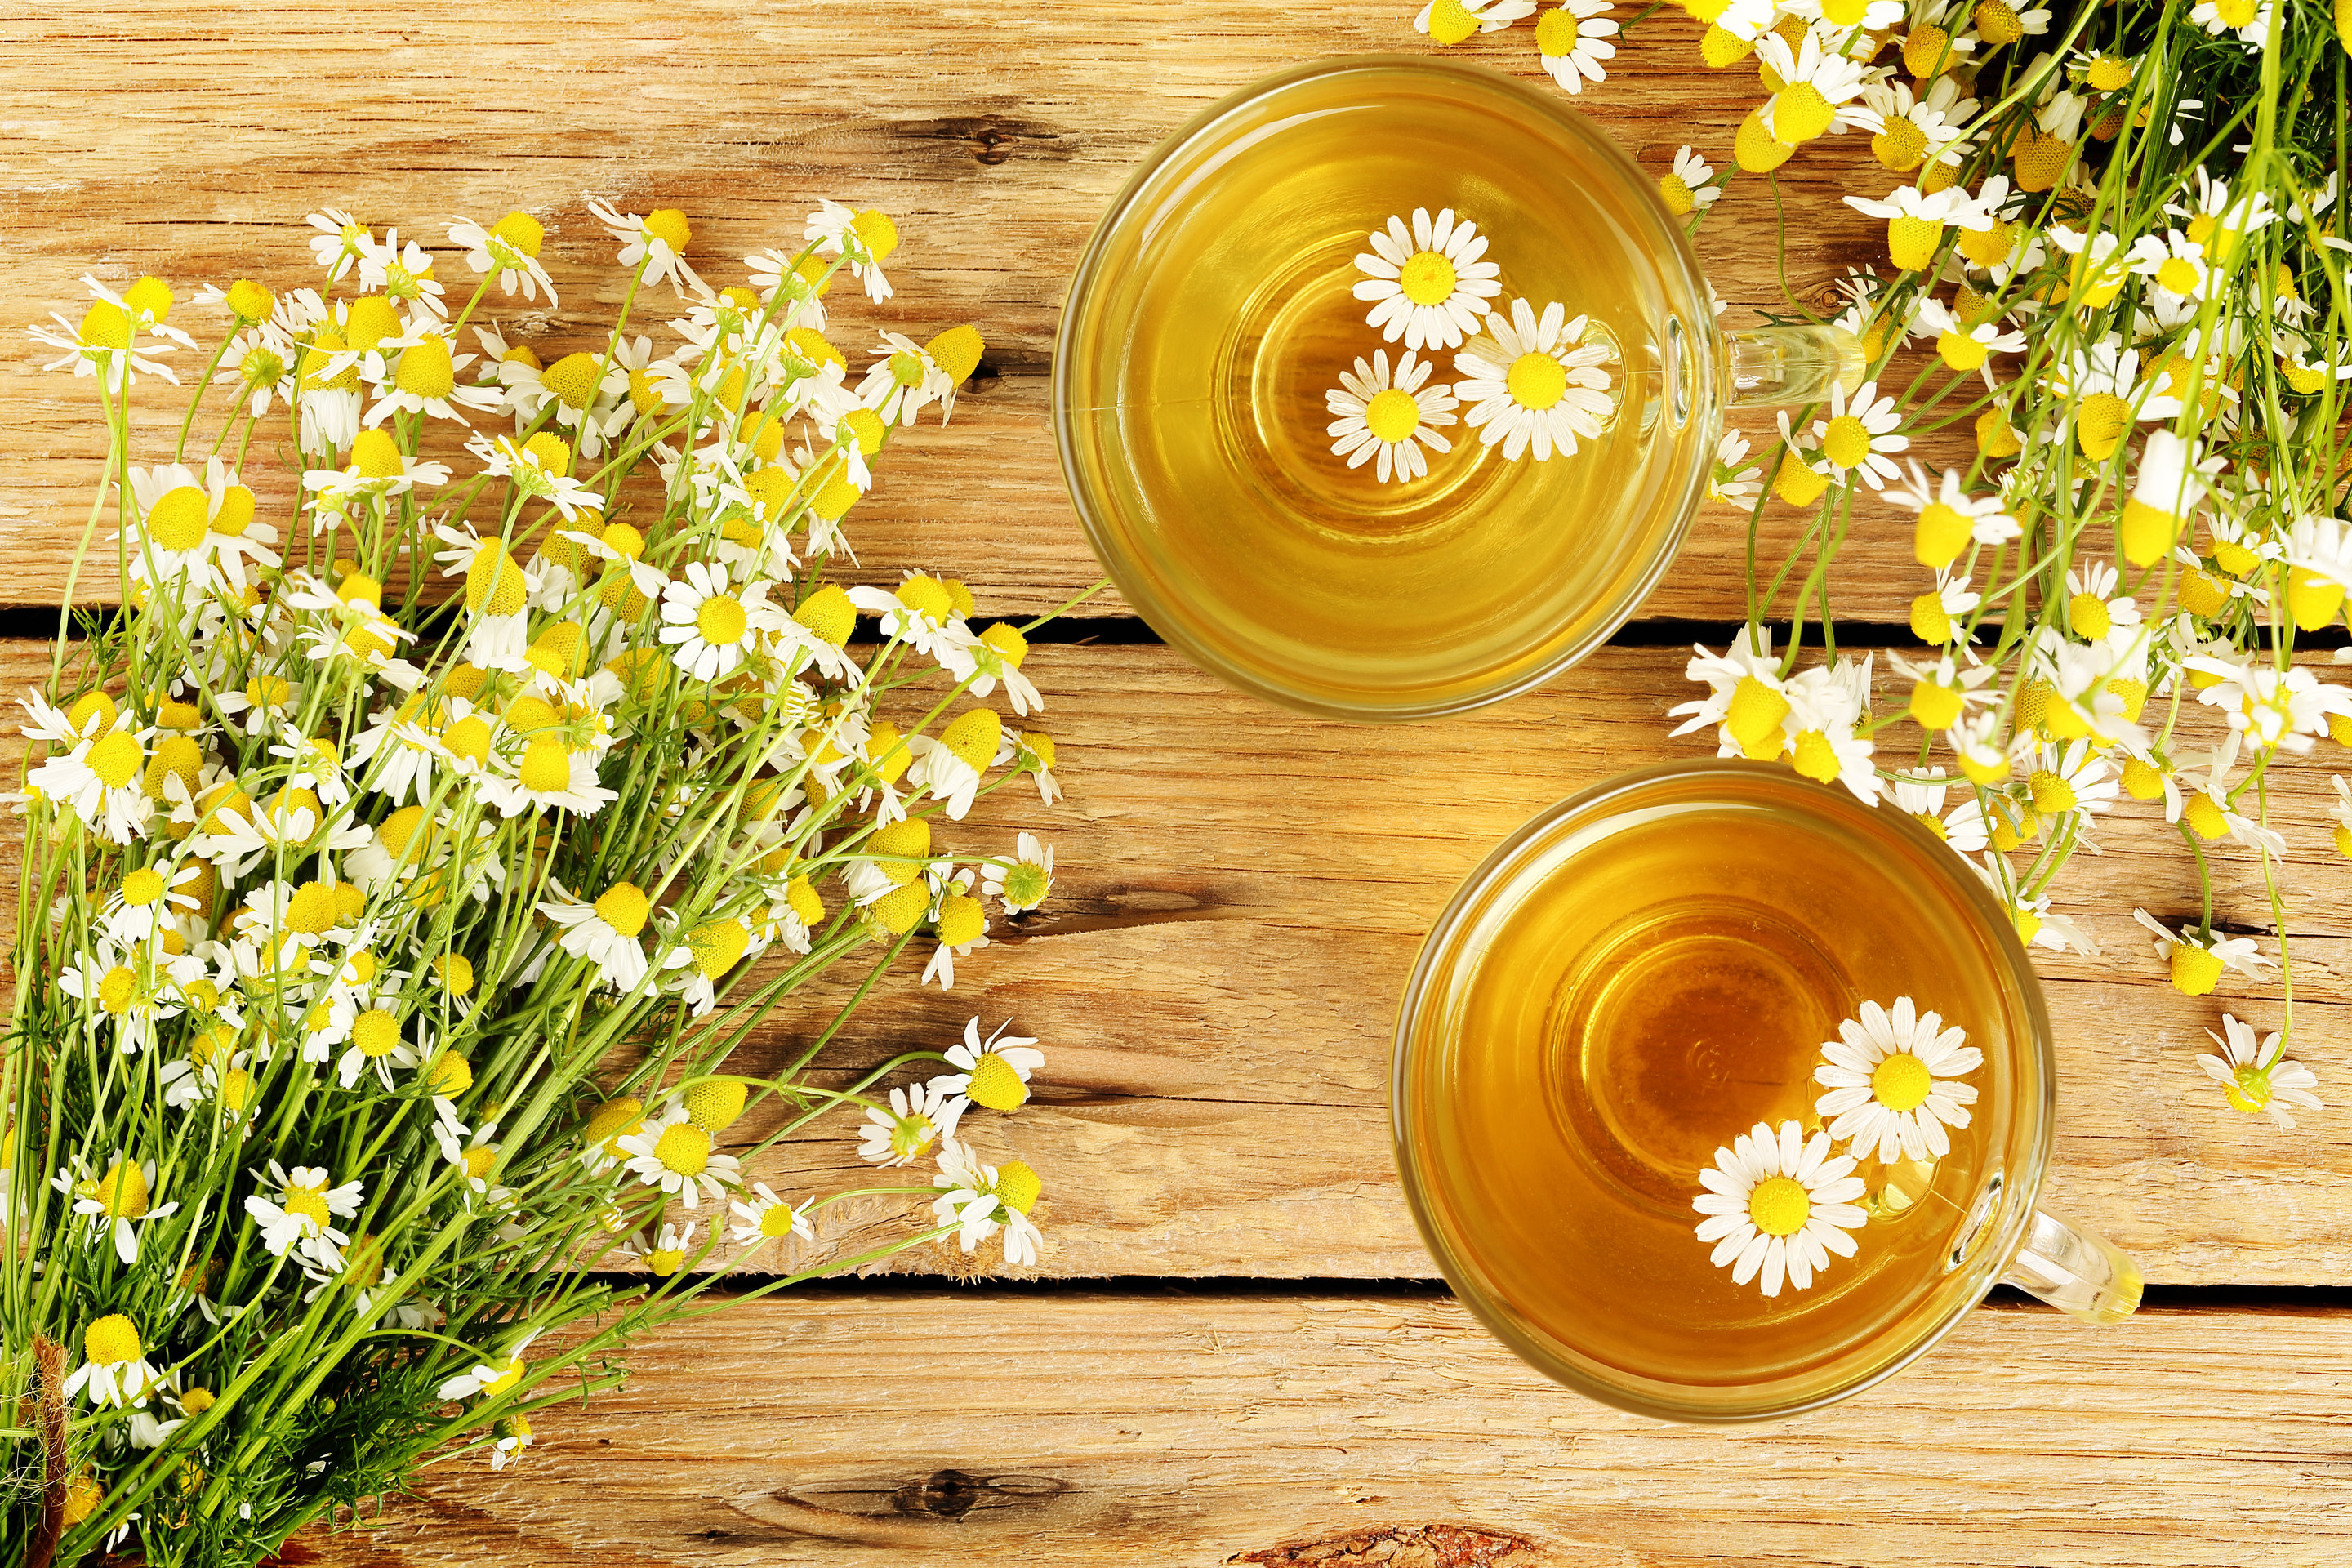 Chamomile tea may help control diabetes as my research into 19th credit constantinoszshutterstock chamomile that yellow flower mightylinksfo